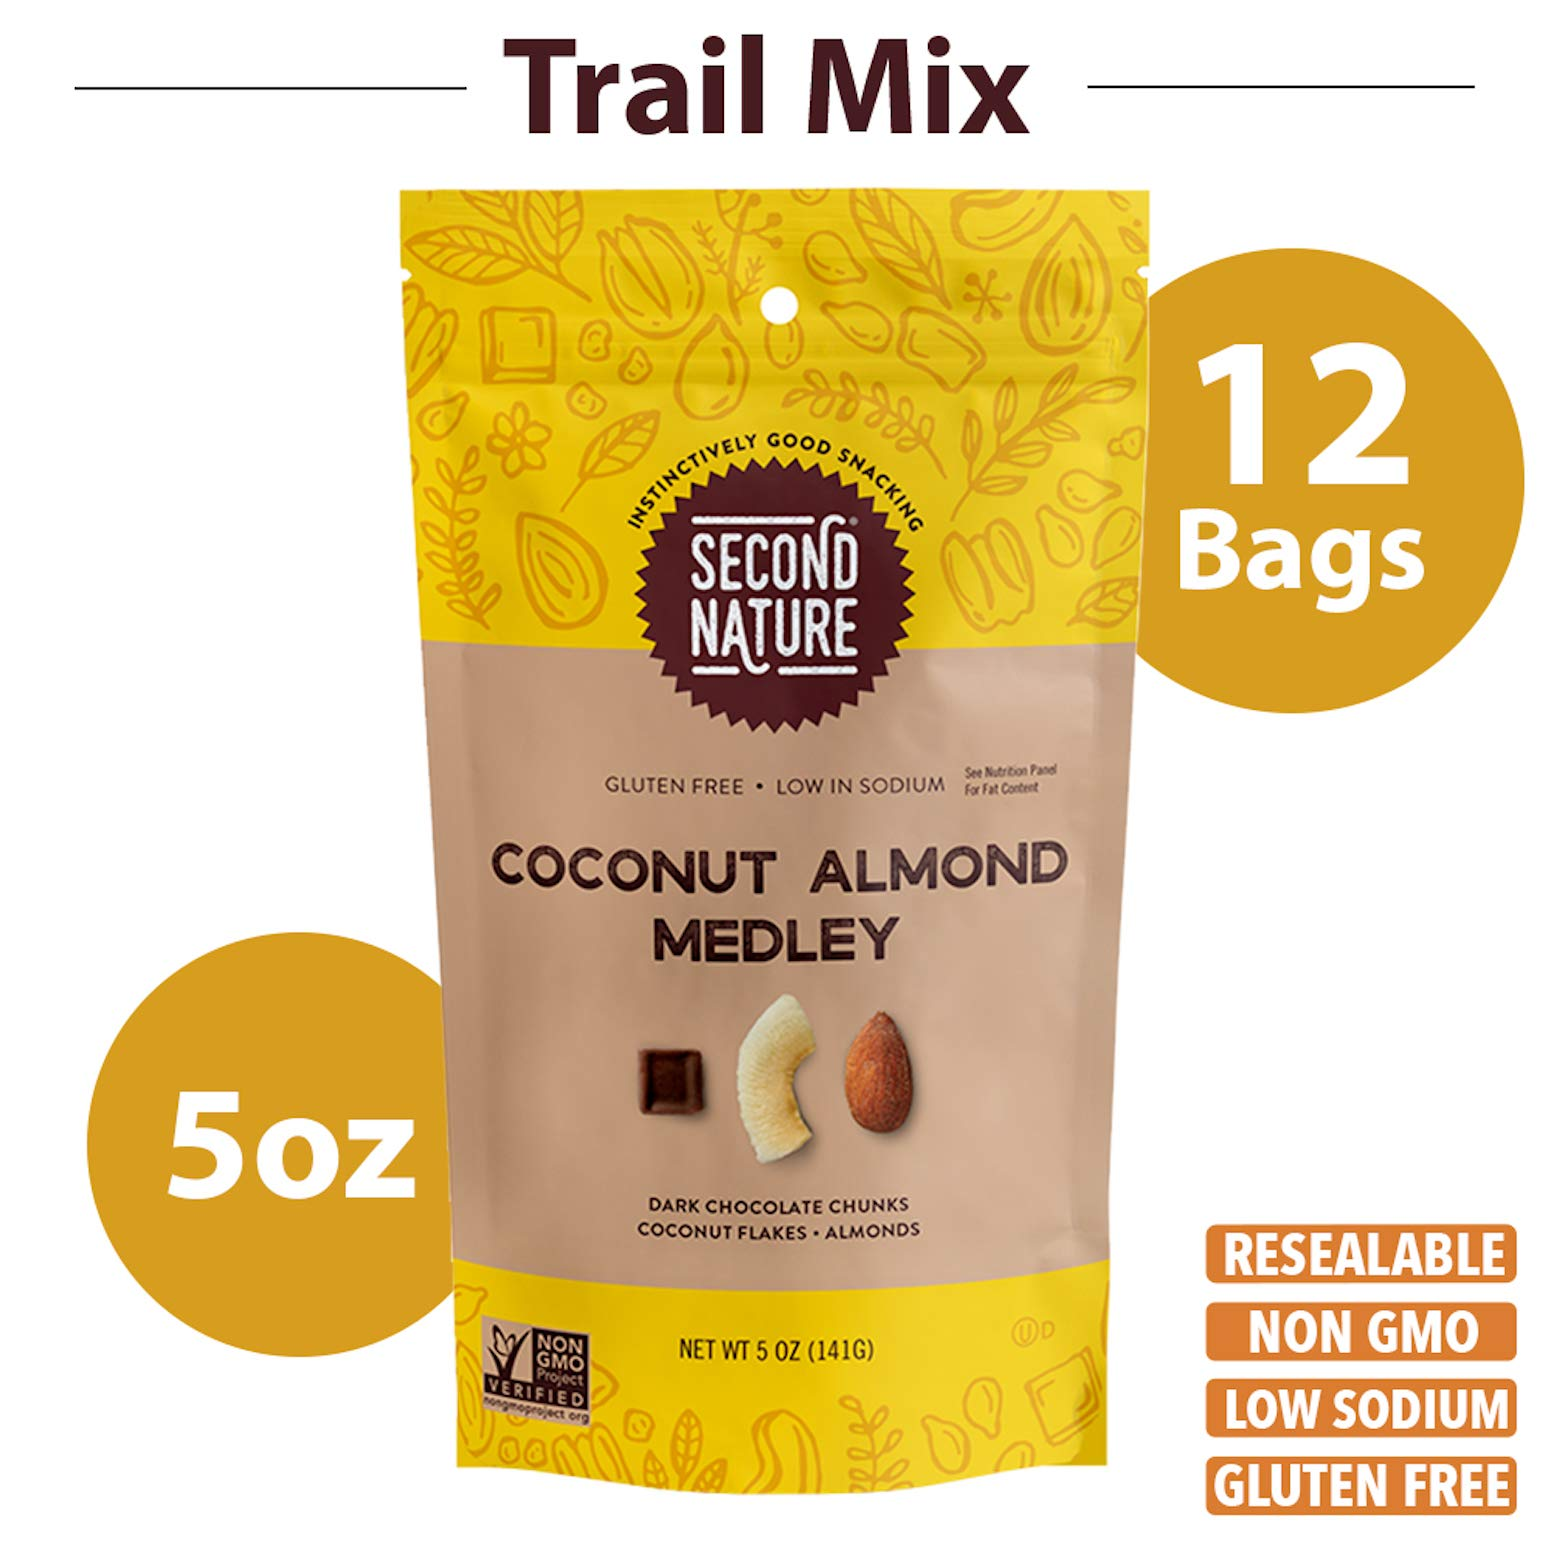 Second Nature Coconut Almond Medley Trail Mix - Healthy Nuts Snack - Bulk Pack of 5 oz Individual Single Serve Bags (Pack of 12) by Second Nature